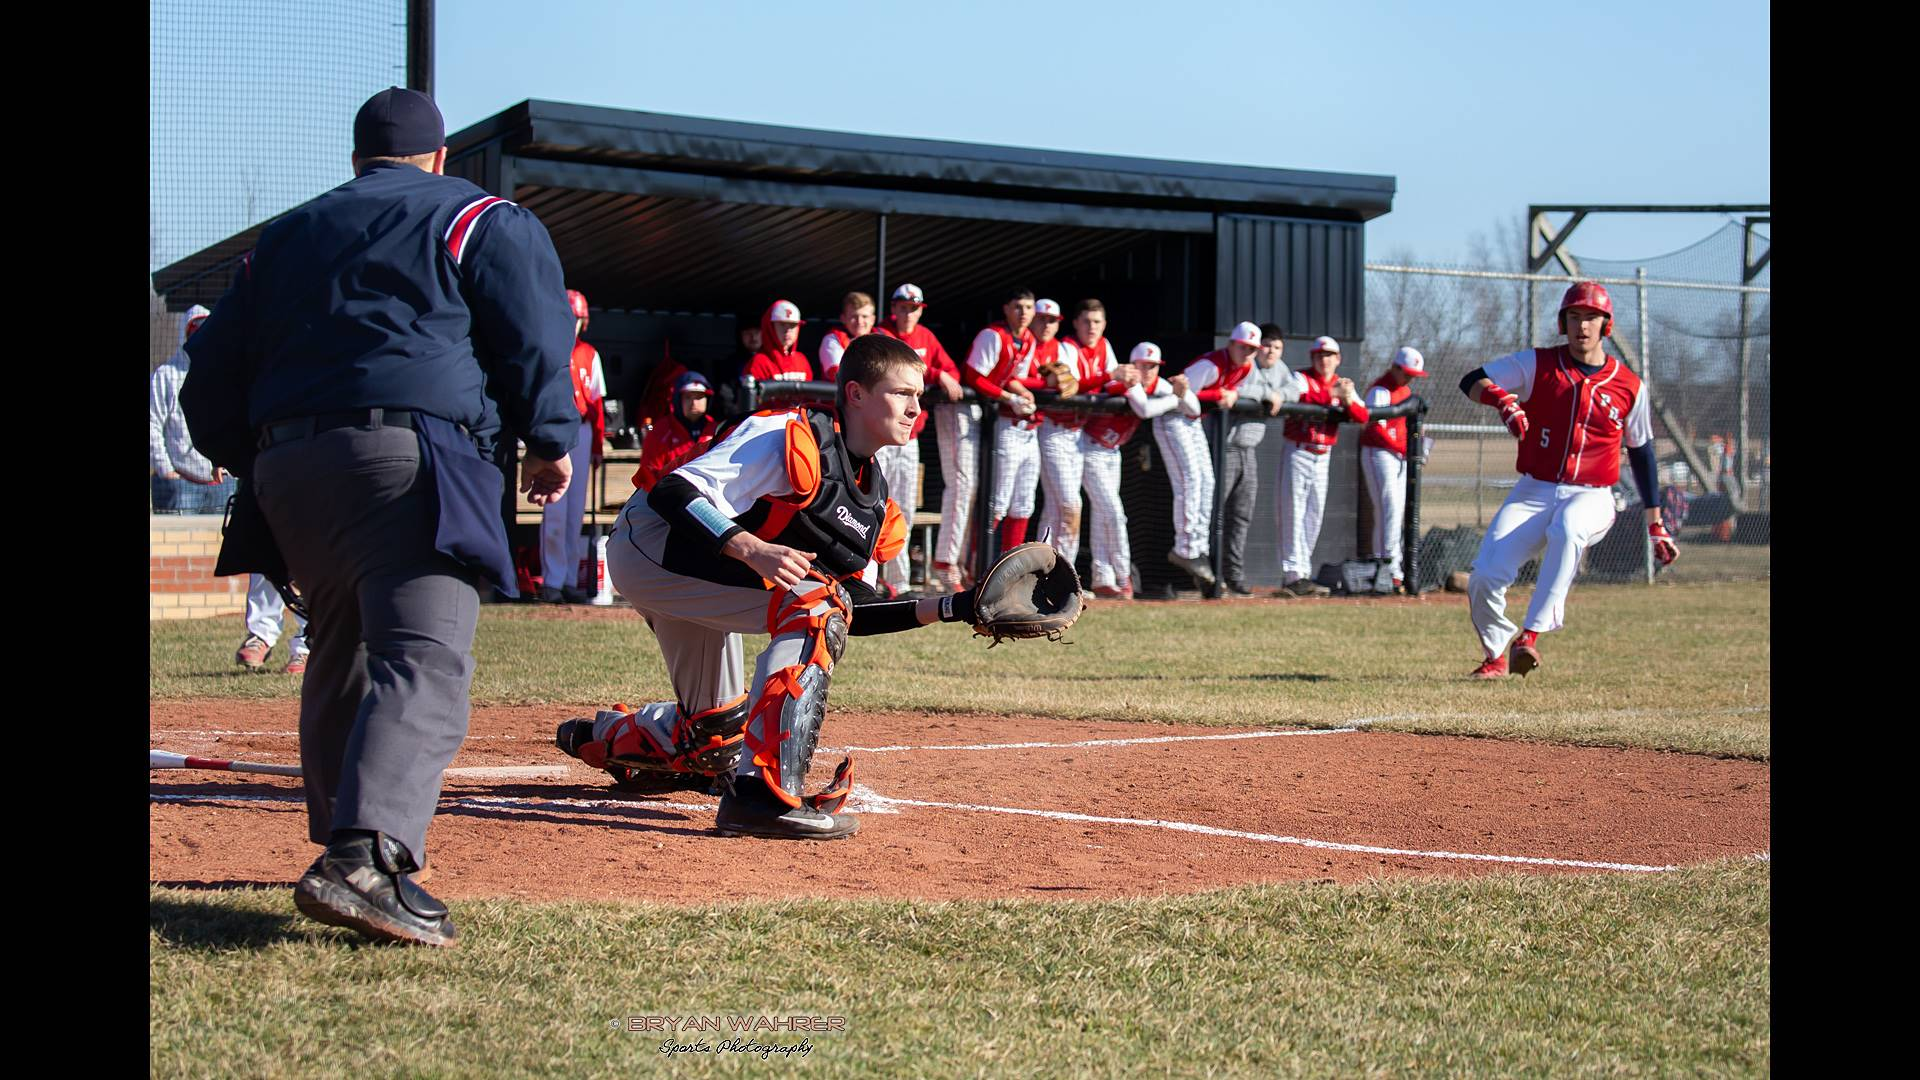 Baseball team in dugout with a play at the plate